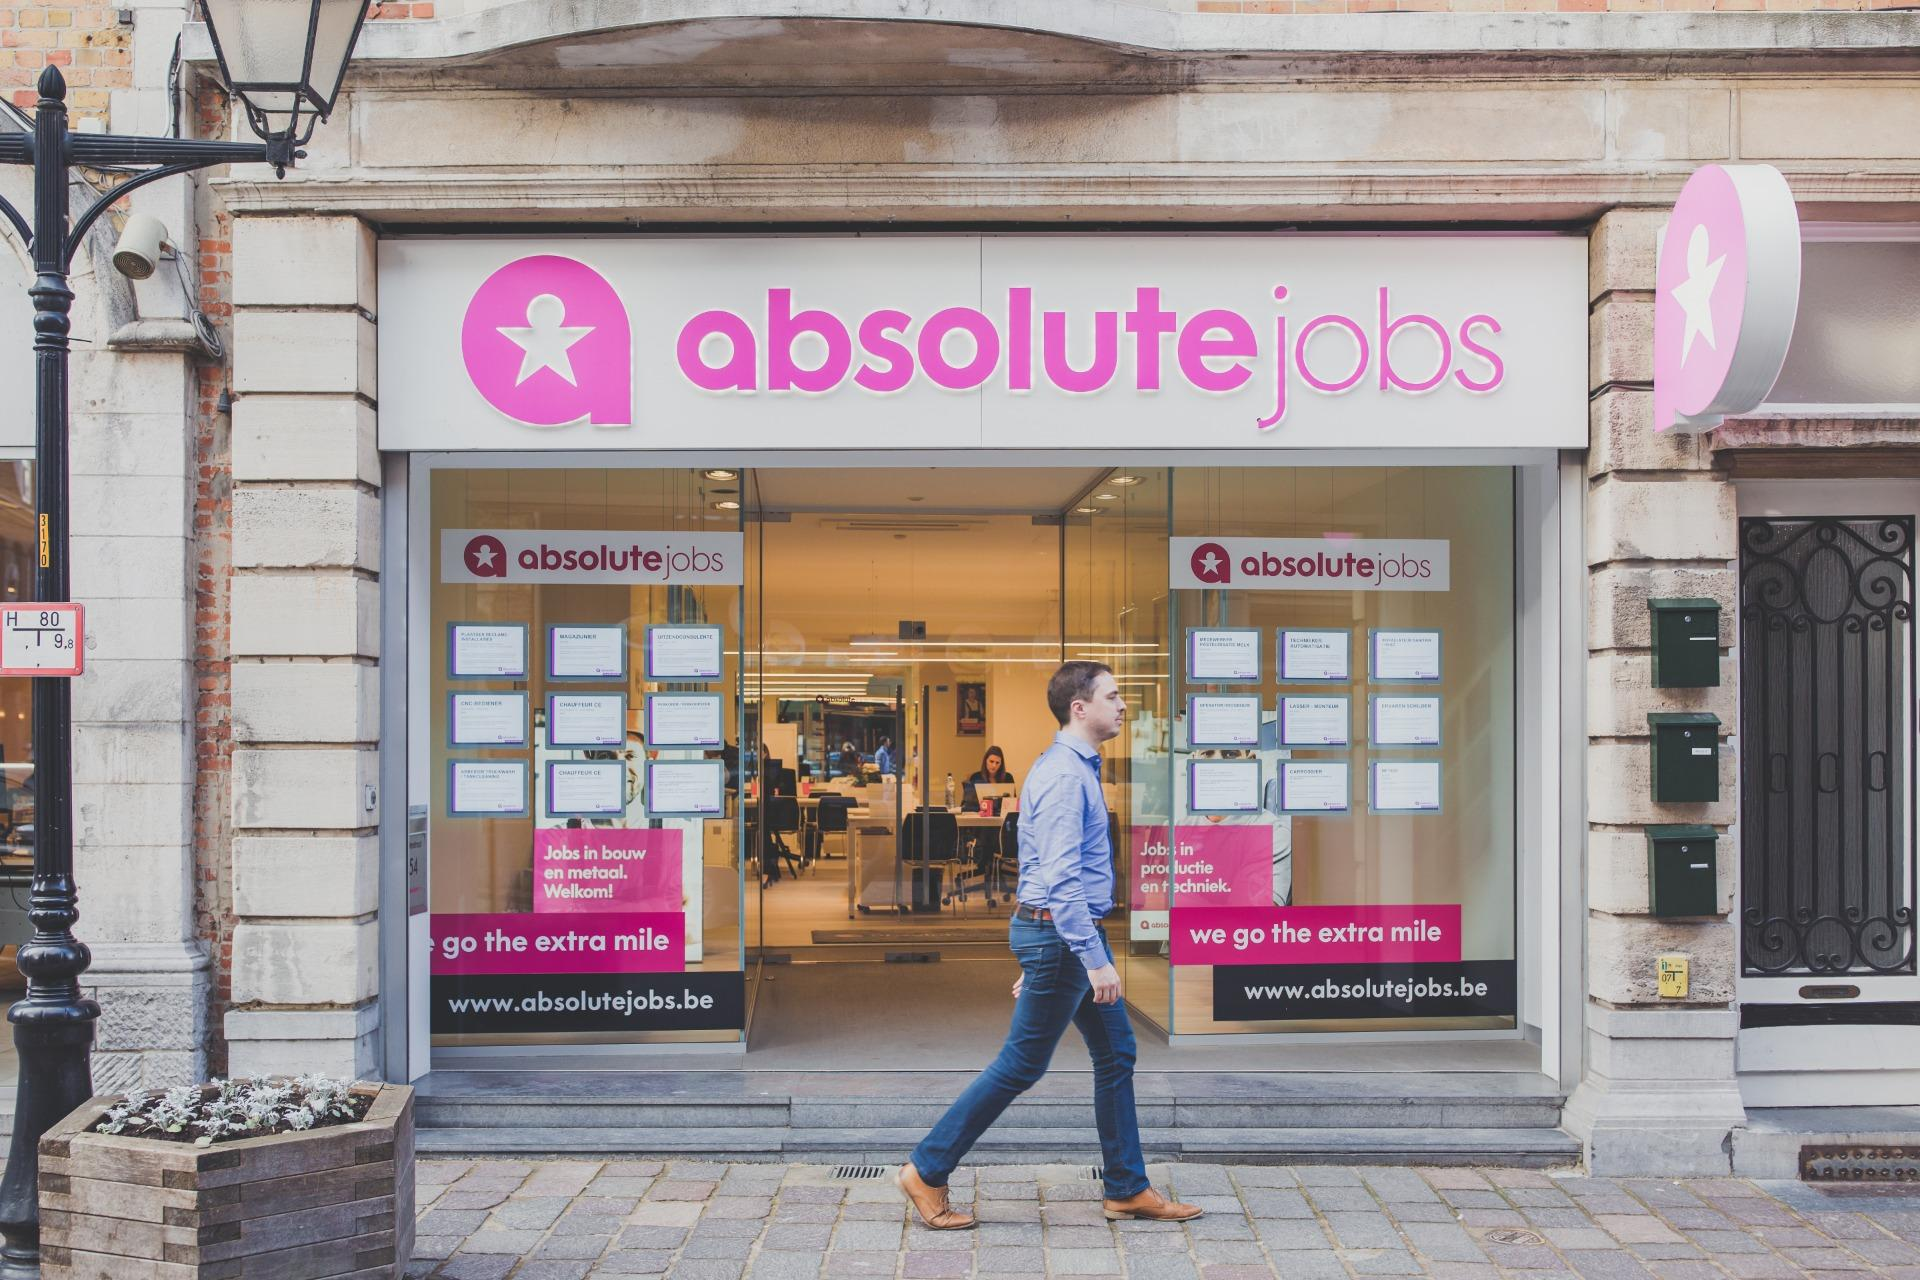 absolute jobs Ypres